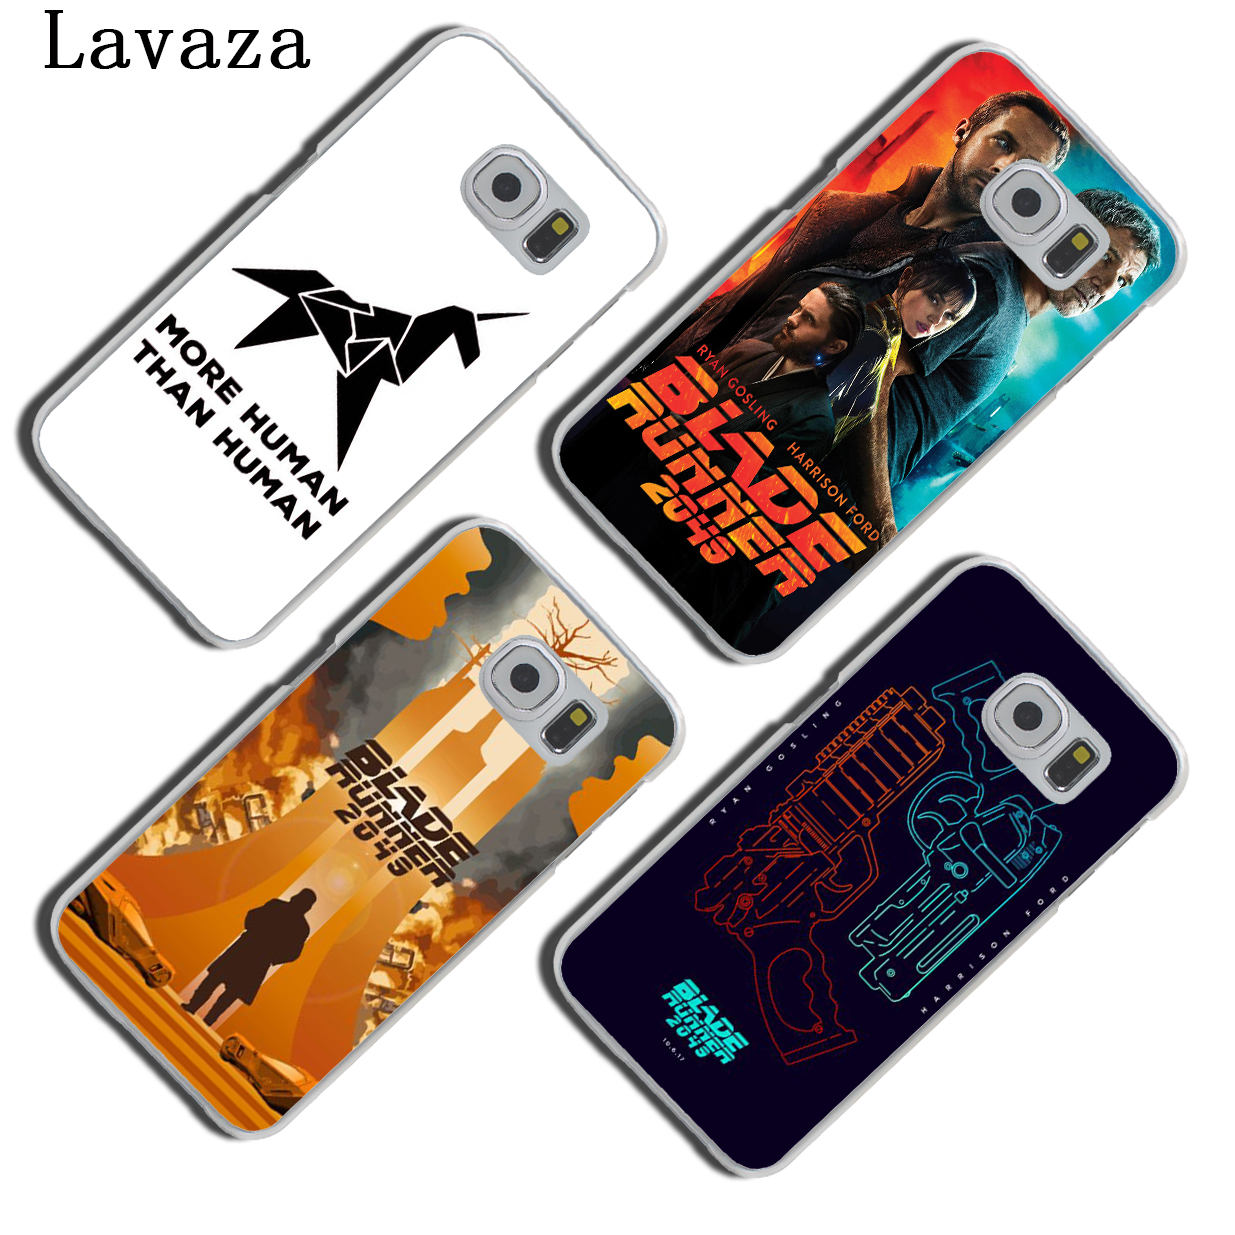 Lavaza Blade Runner 2049 film Hard Phone Shell Case for Samsung Galaxy S8 S9 Plus S3 S4 S5 & Mini S6 S7 Edge Plus Cover